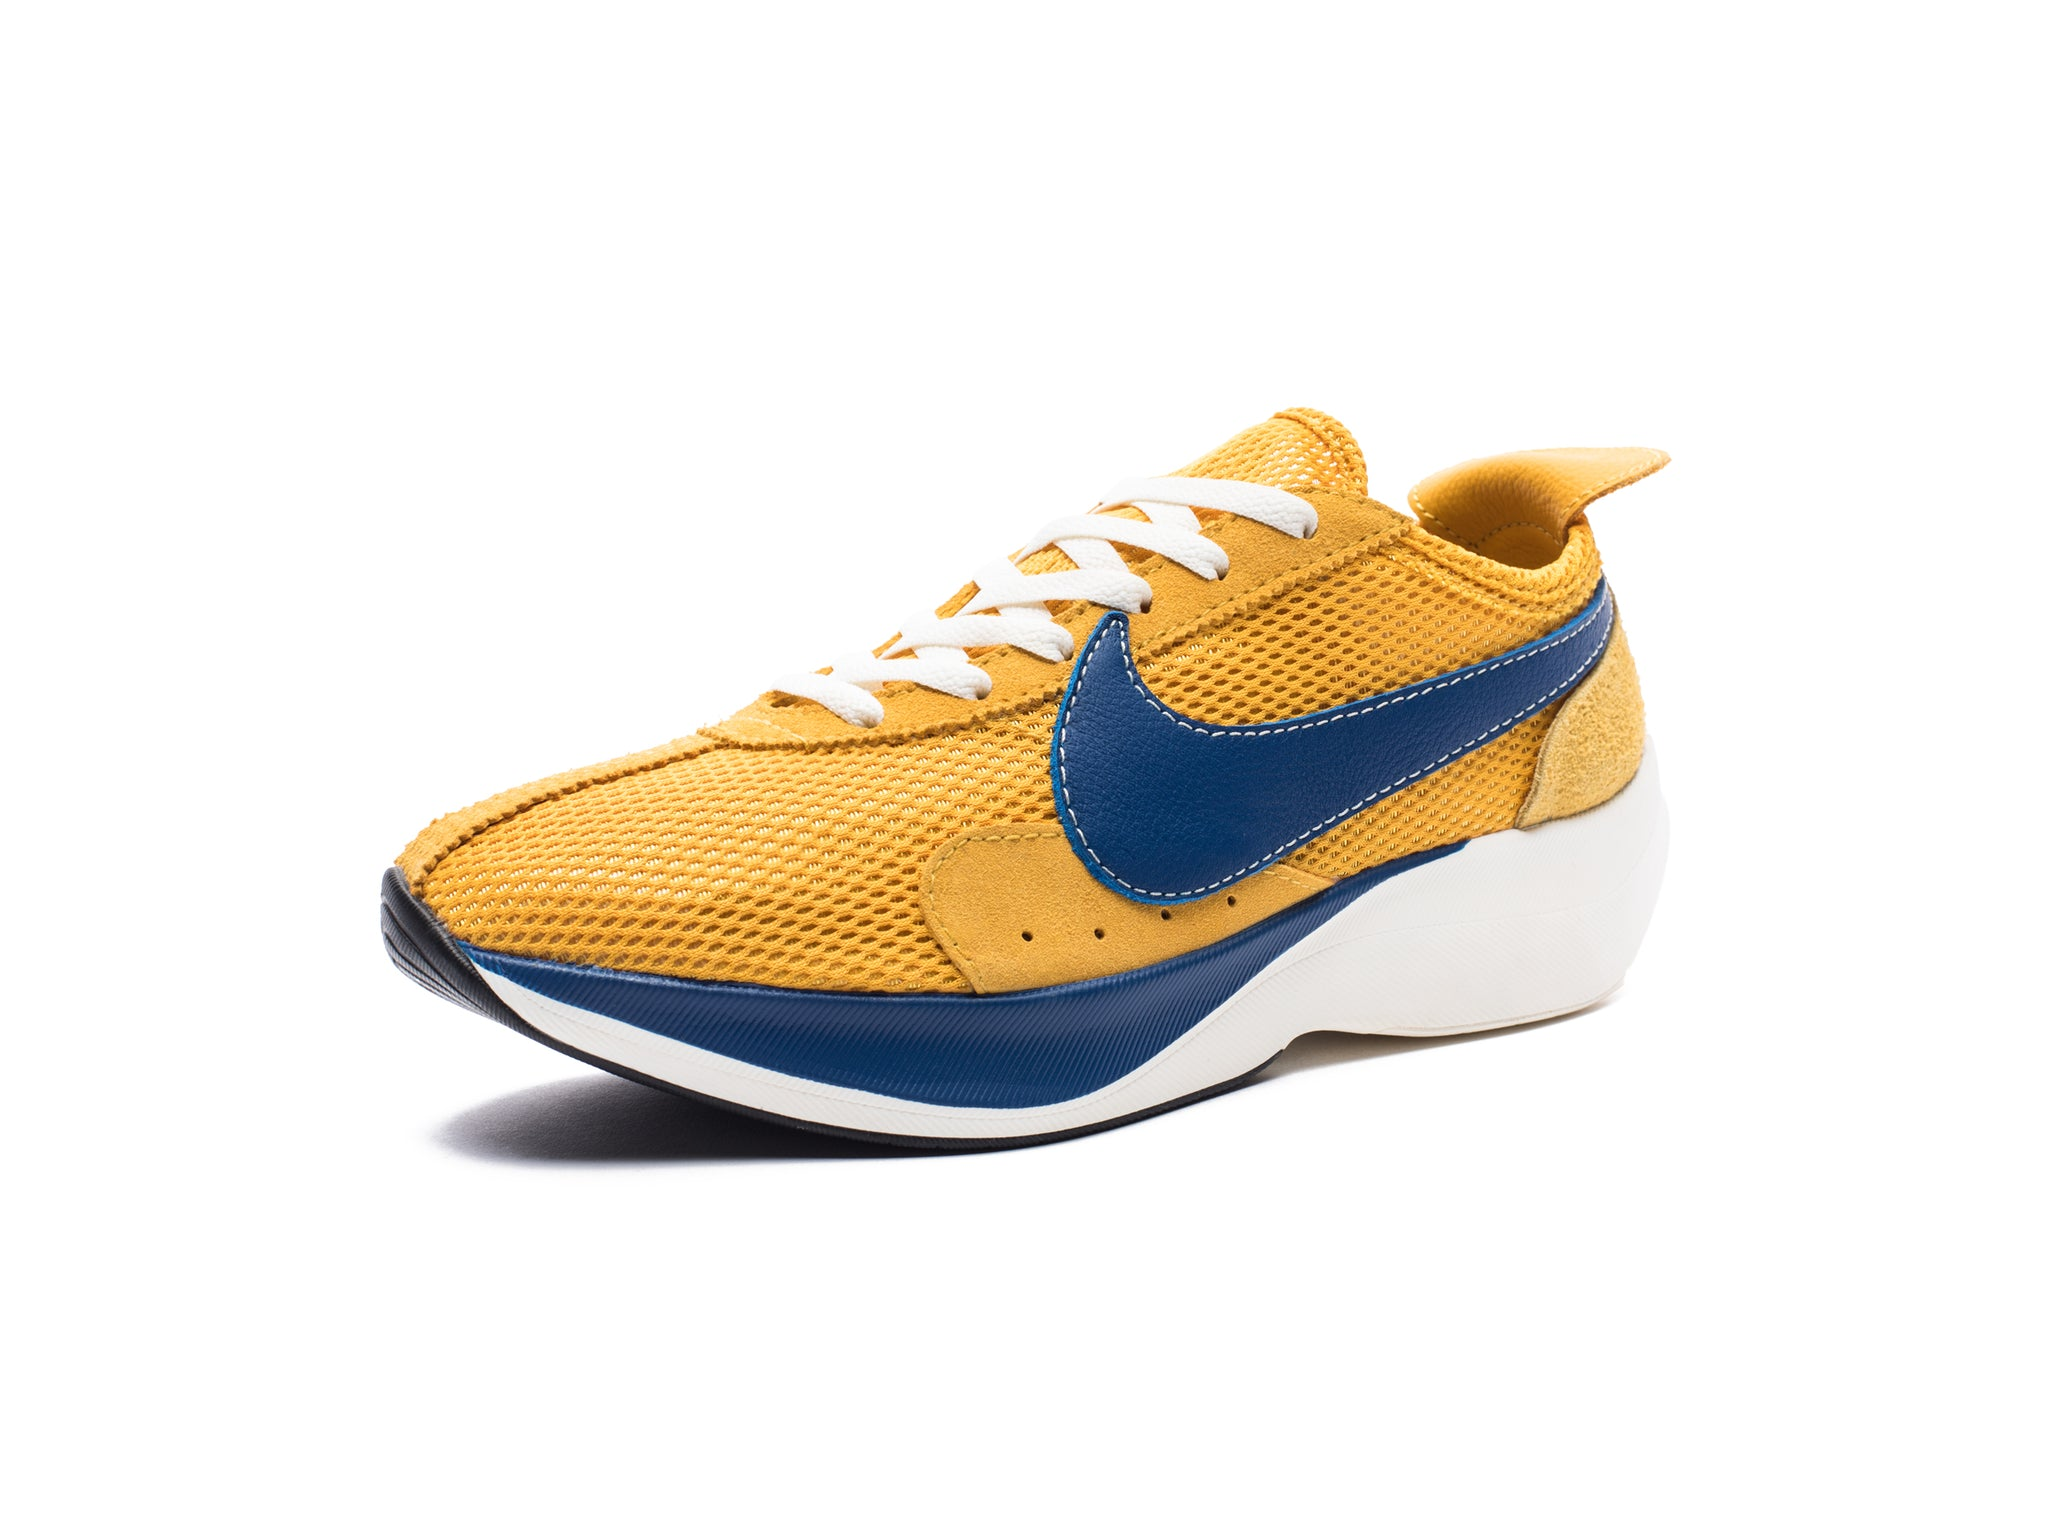 MOON RACER QS - YELLOWOCHRE/GYMBLUE/SAIL